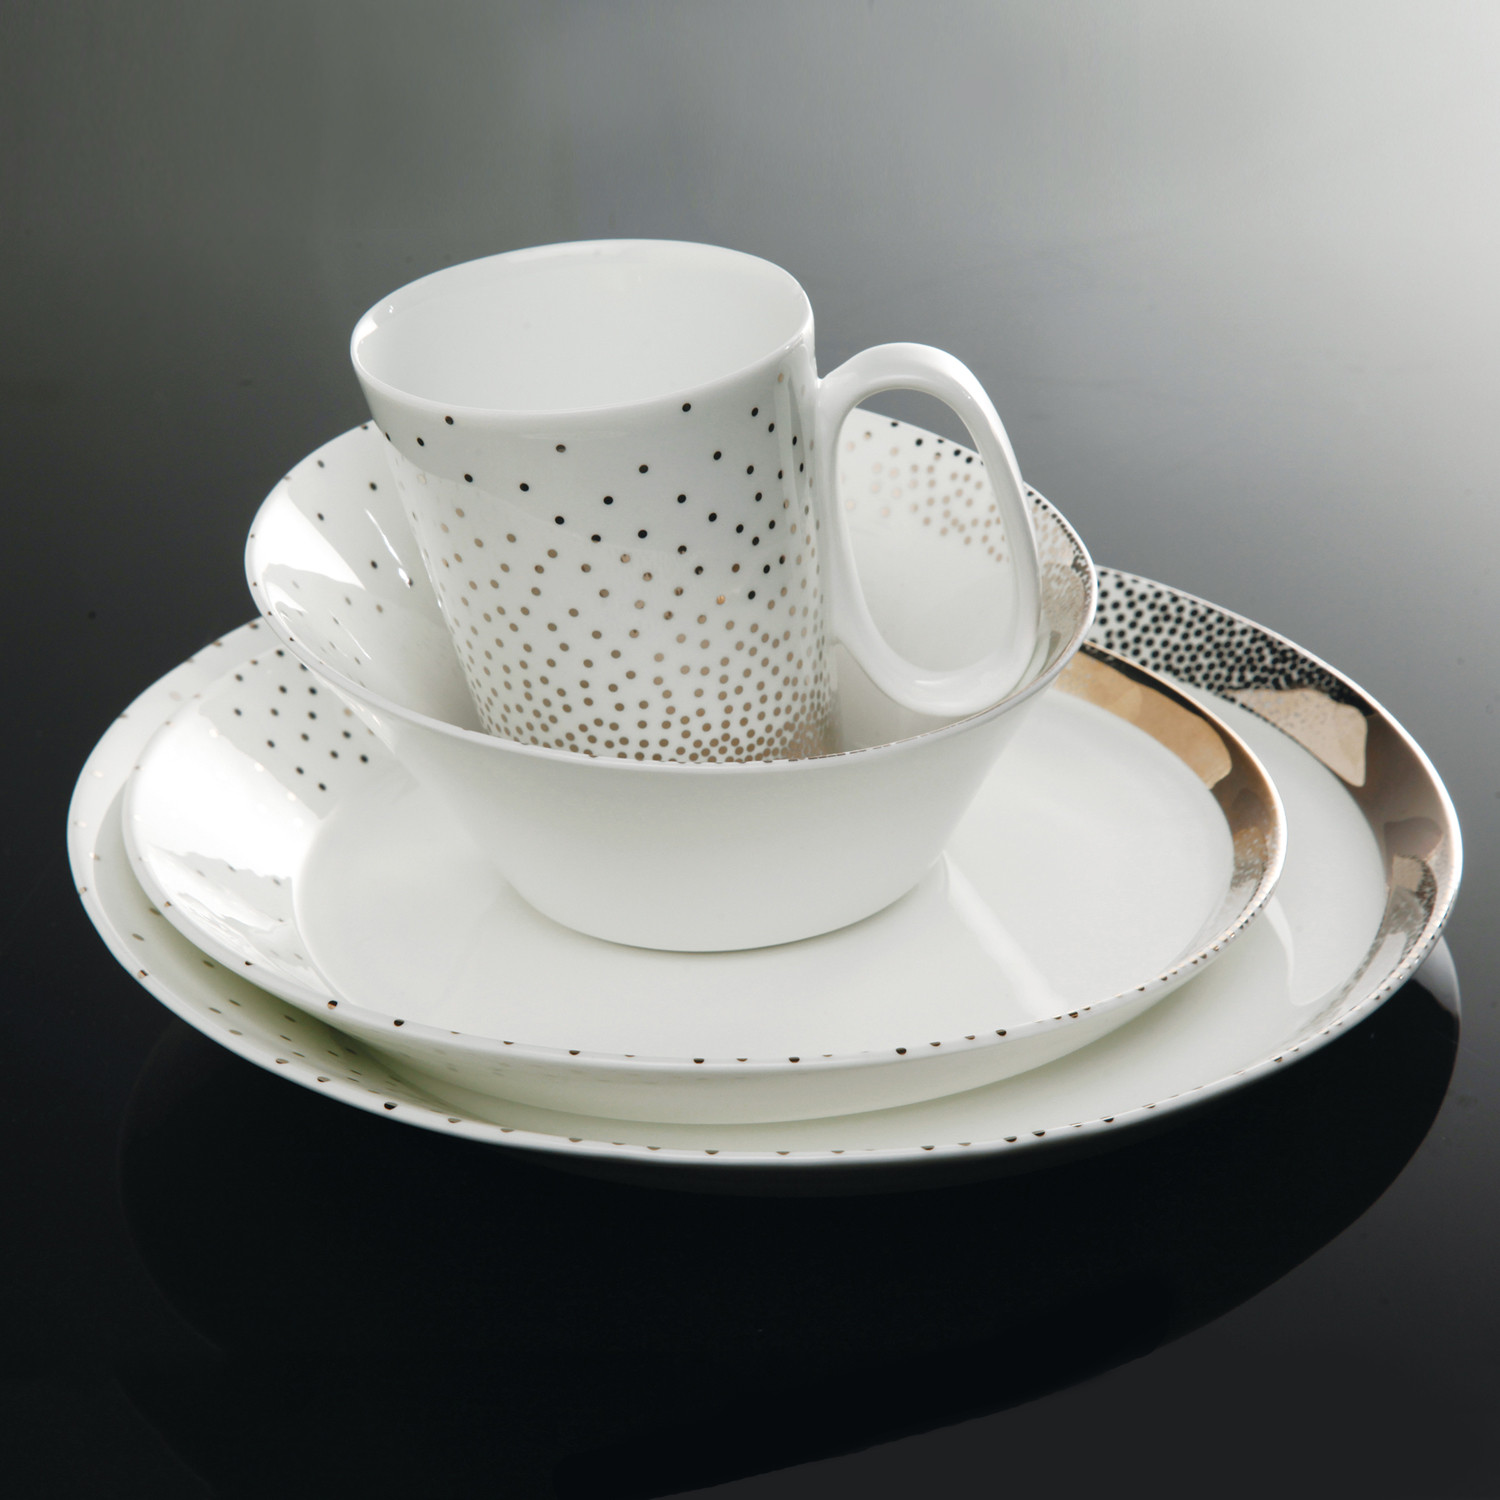 Nambé Tilt Dazzle Dinnerware // 4pc Set & Nambé Tilt Dazzle Dinnerware // 4pc Set - Nambé Dinnerware - Touch ...